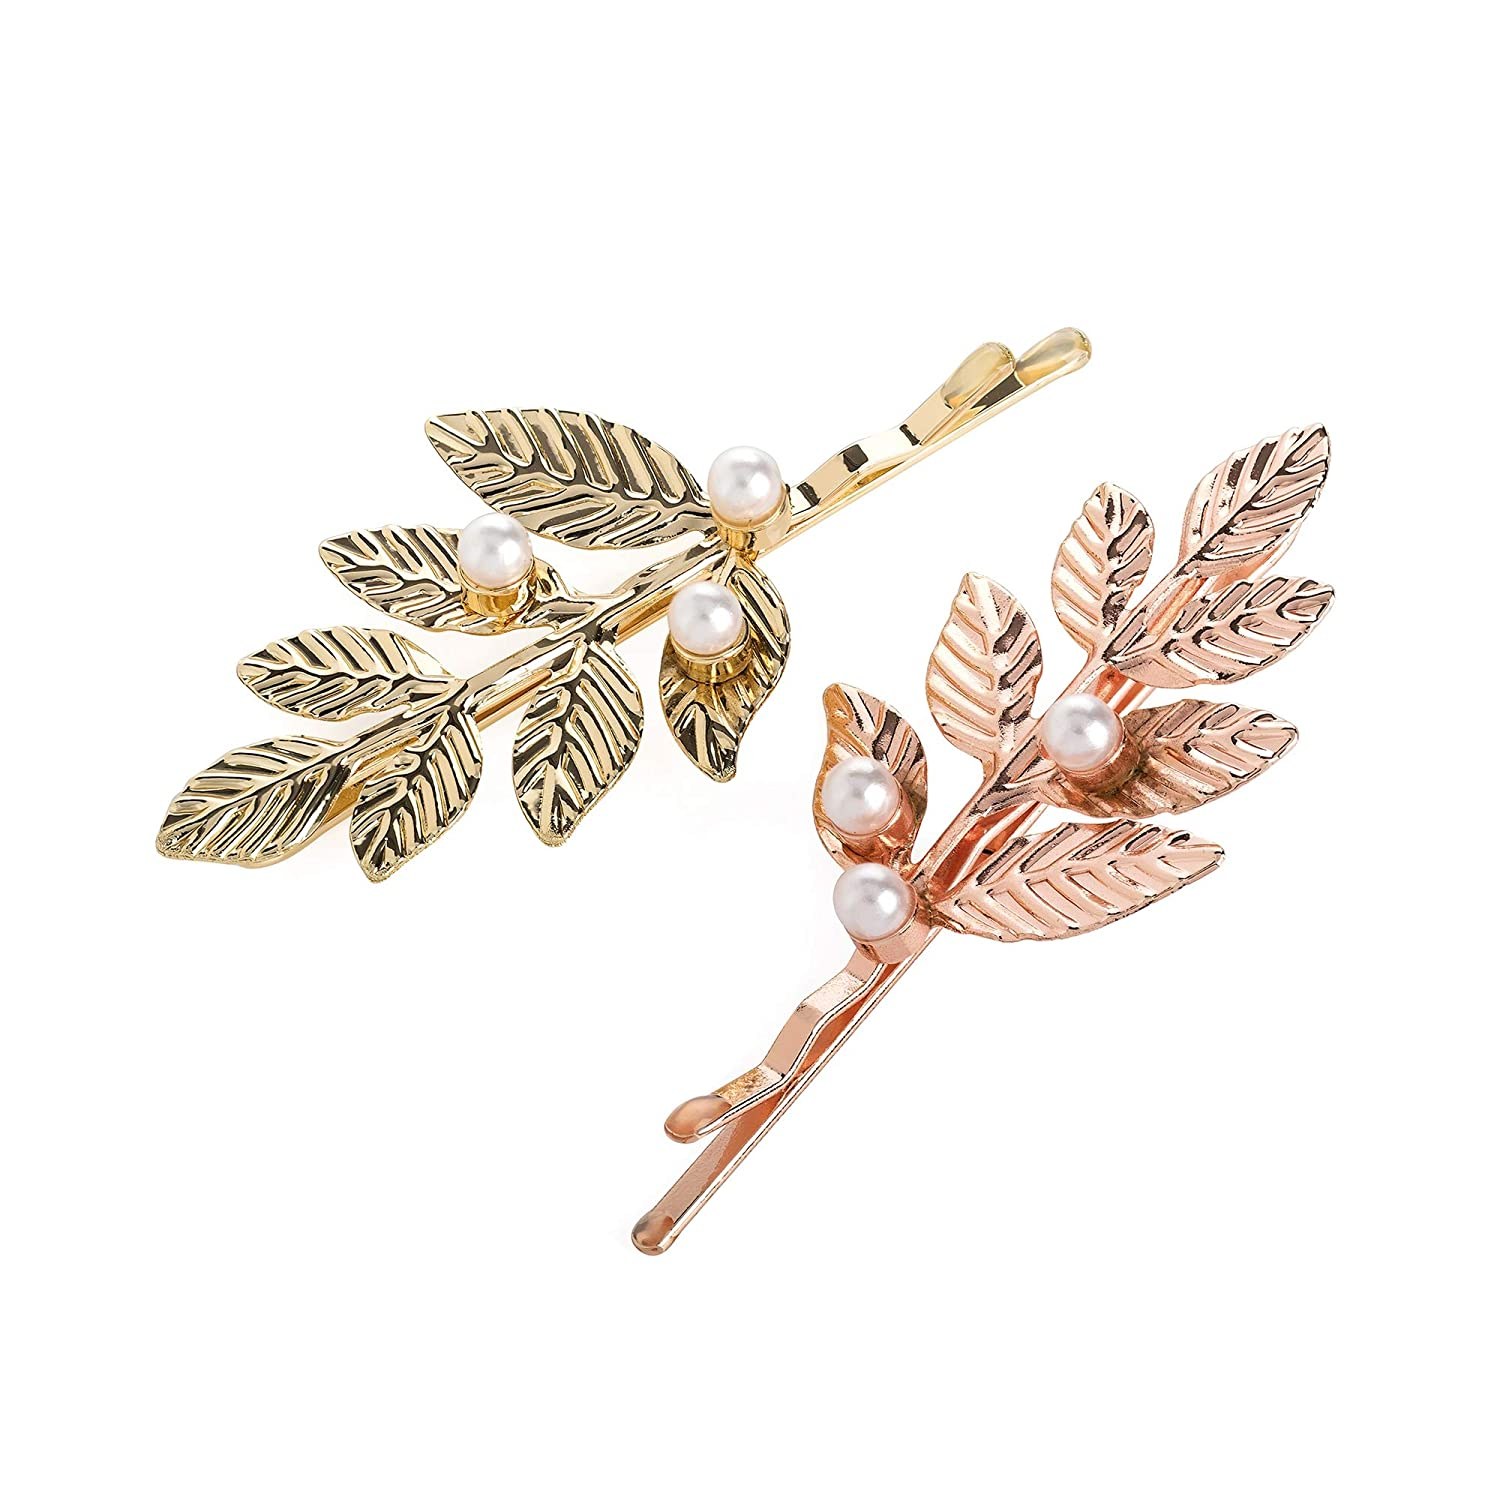 Pair of Gold and Rose Gold Leaf Motif Pearl Hair Slides Grips Clips Pins Jewels Pritties Accessories